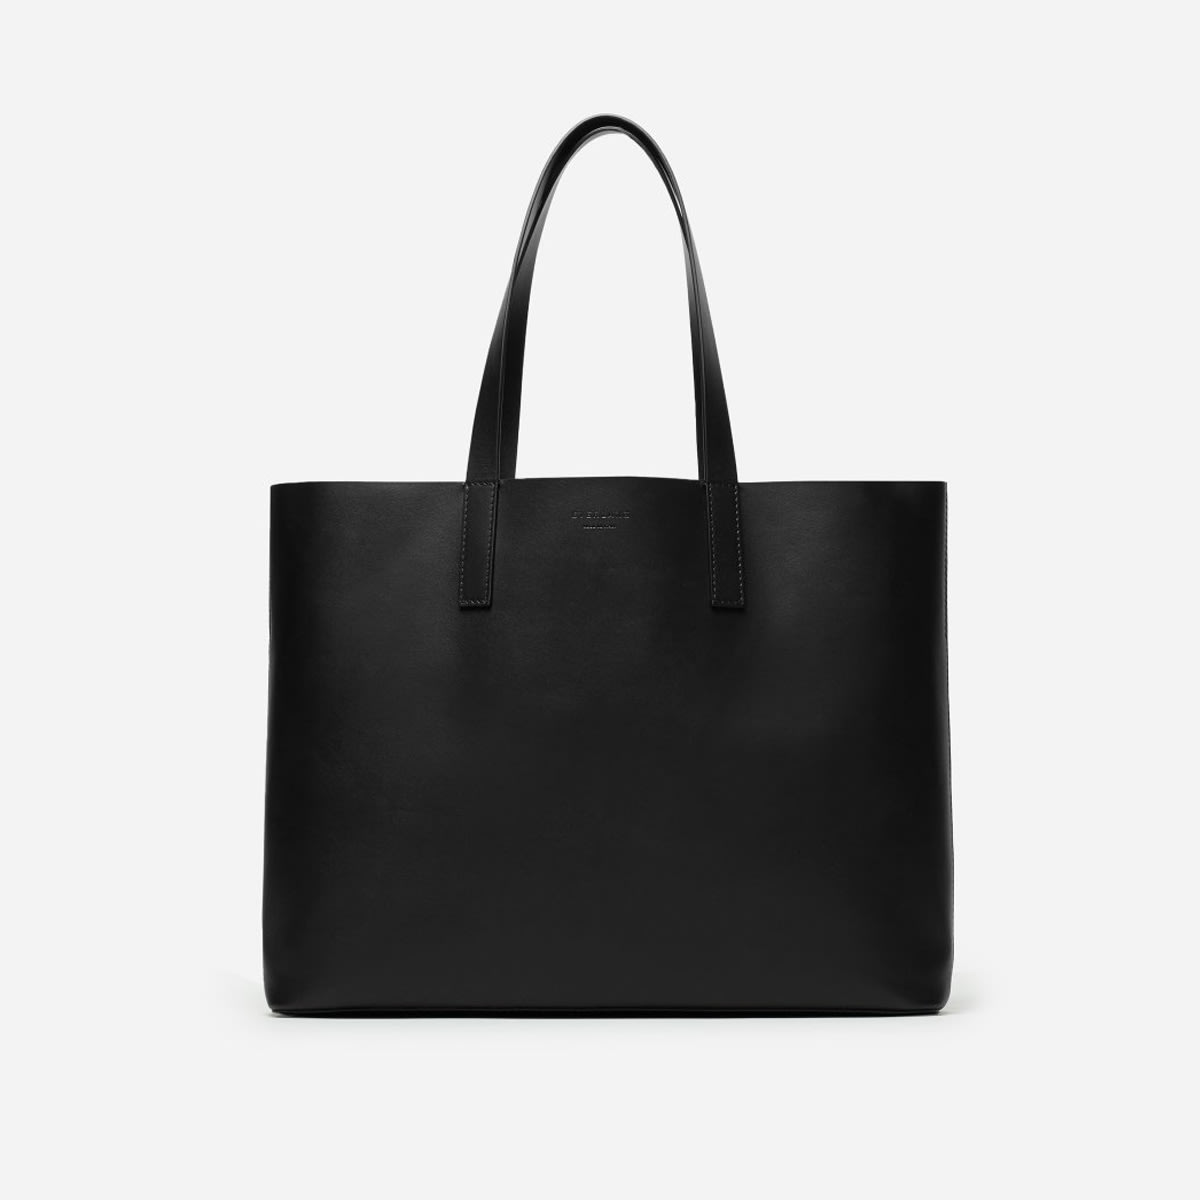 025dacf6af0 The Day Market Tote